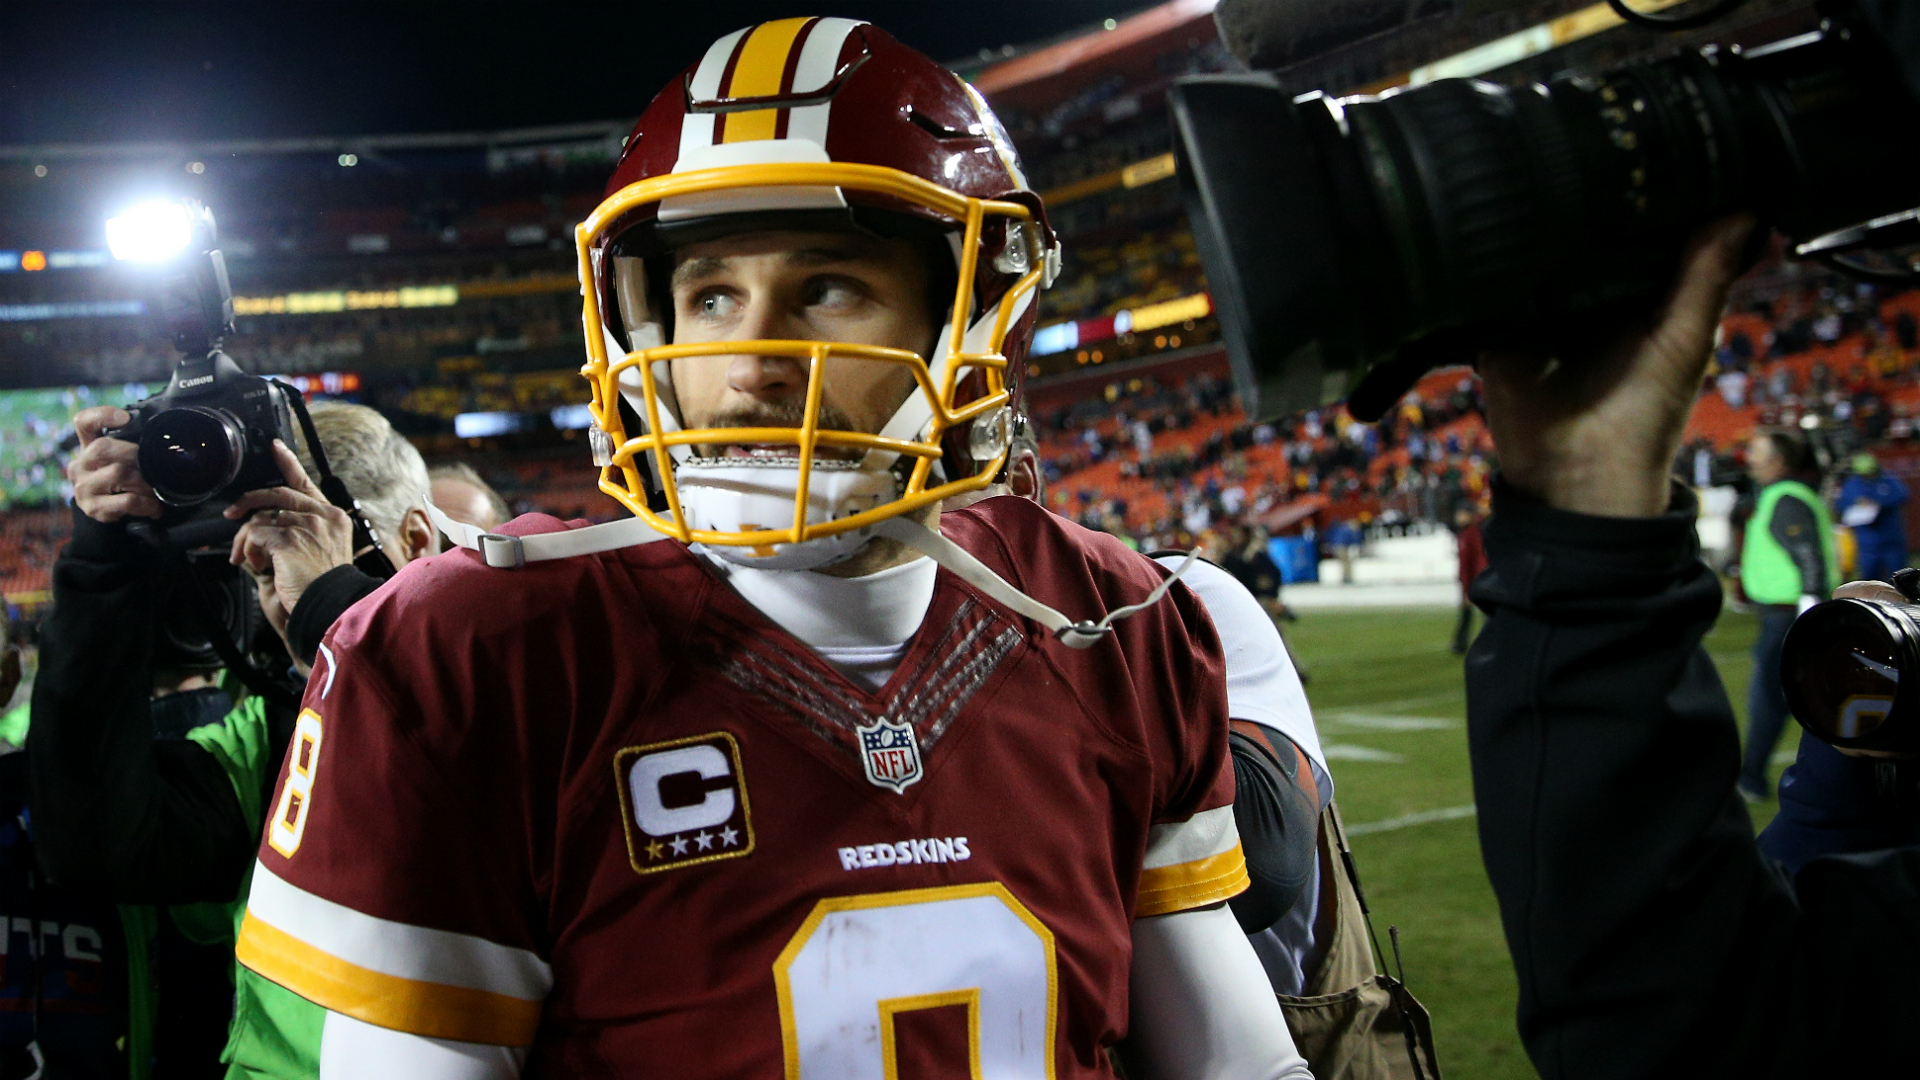 Cleveland likes that: Kirk Cousins would 'seriously consider' playing for Browns